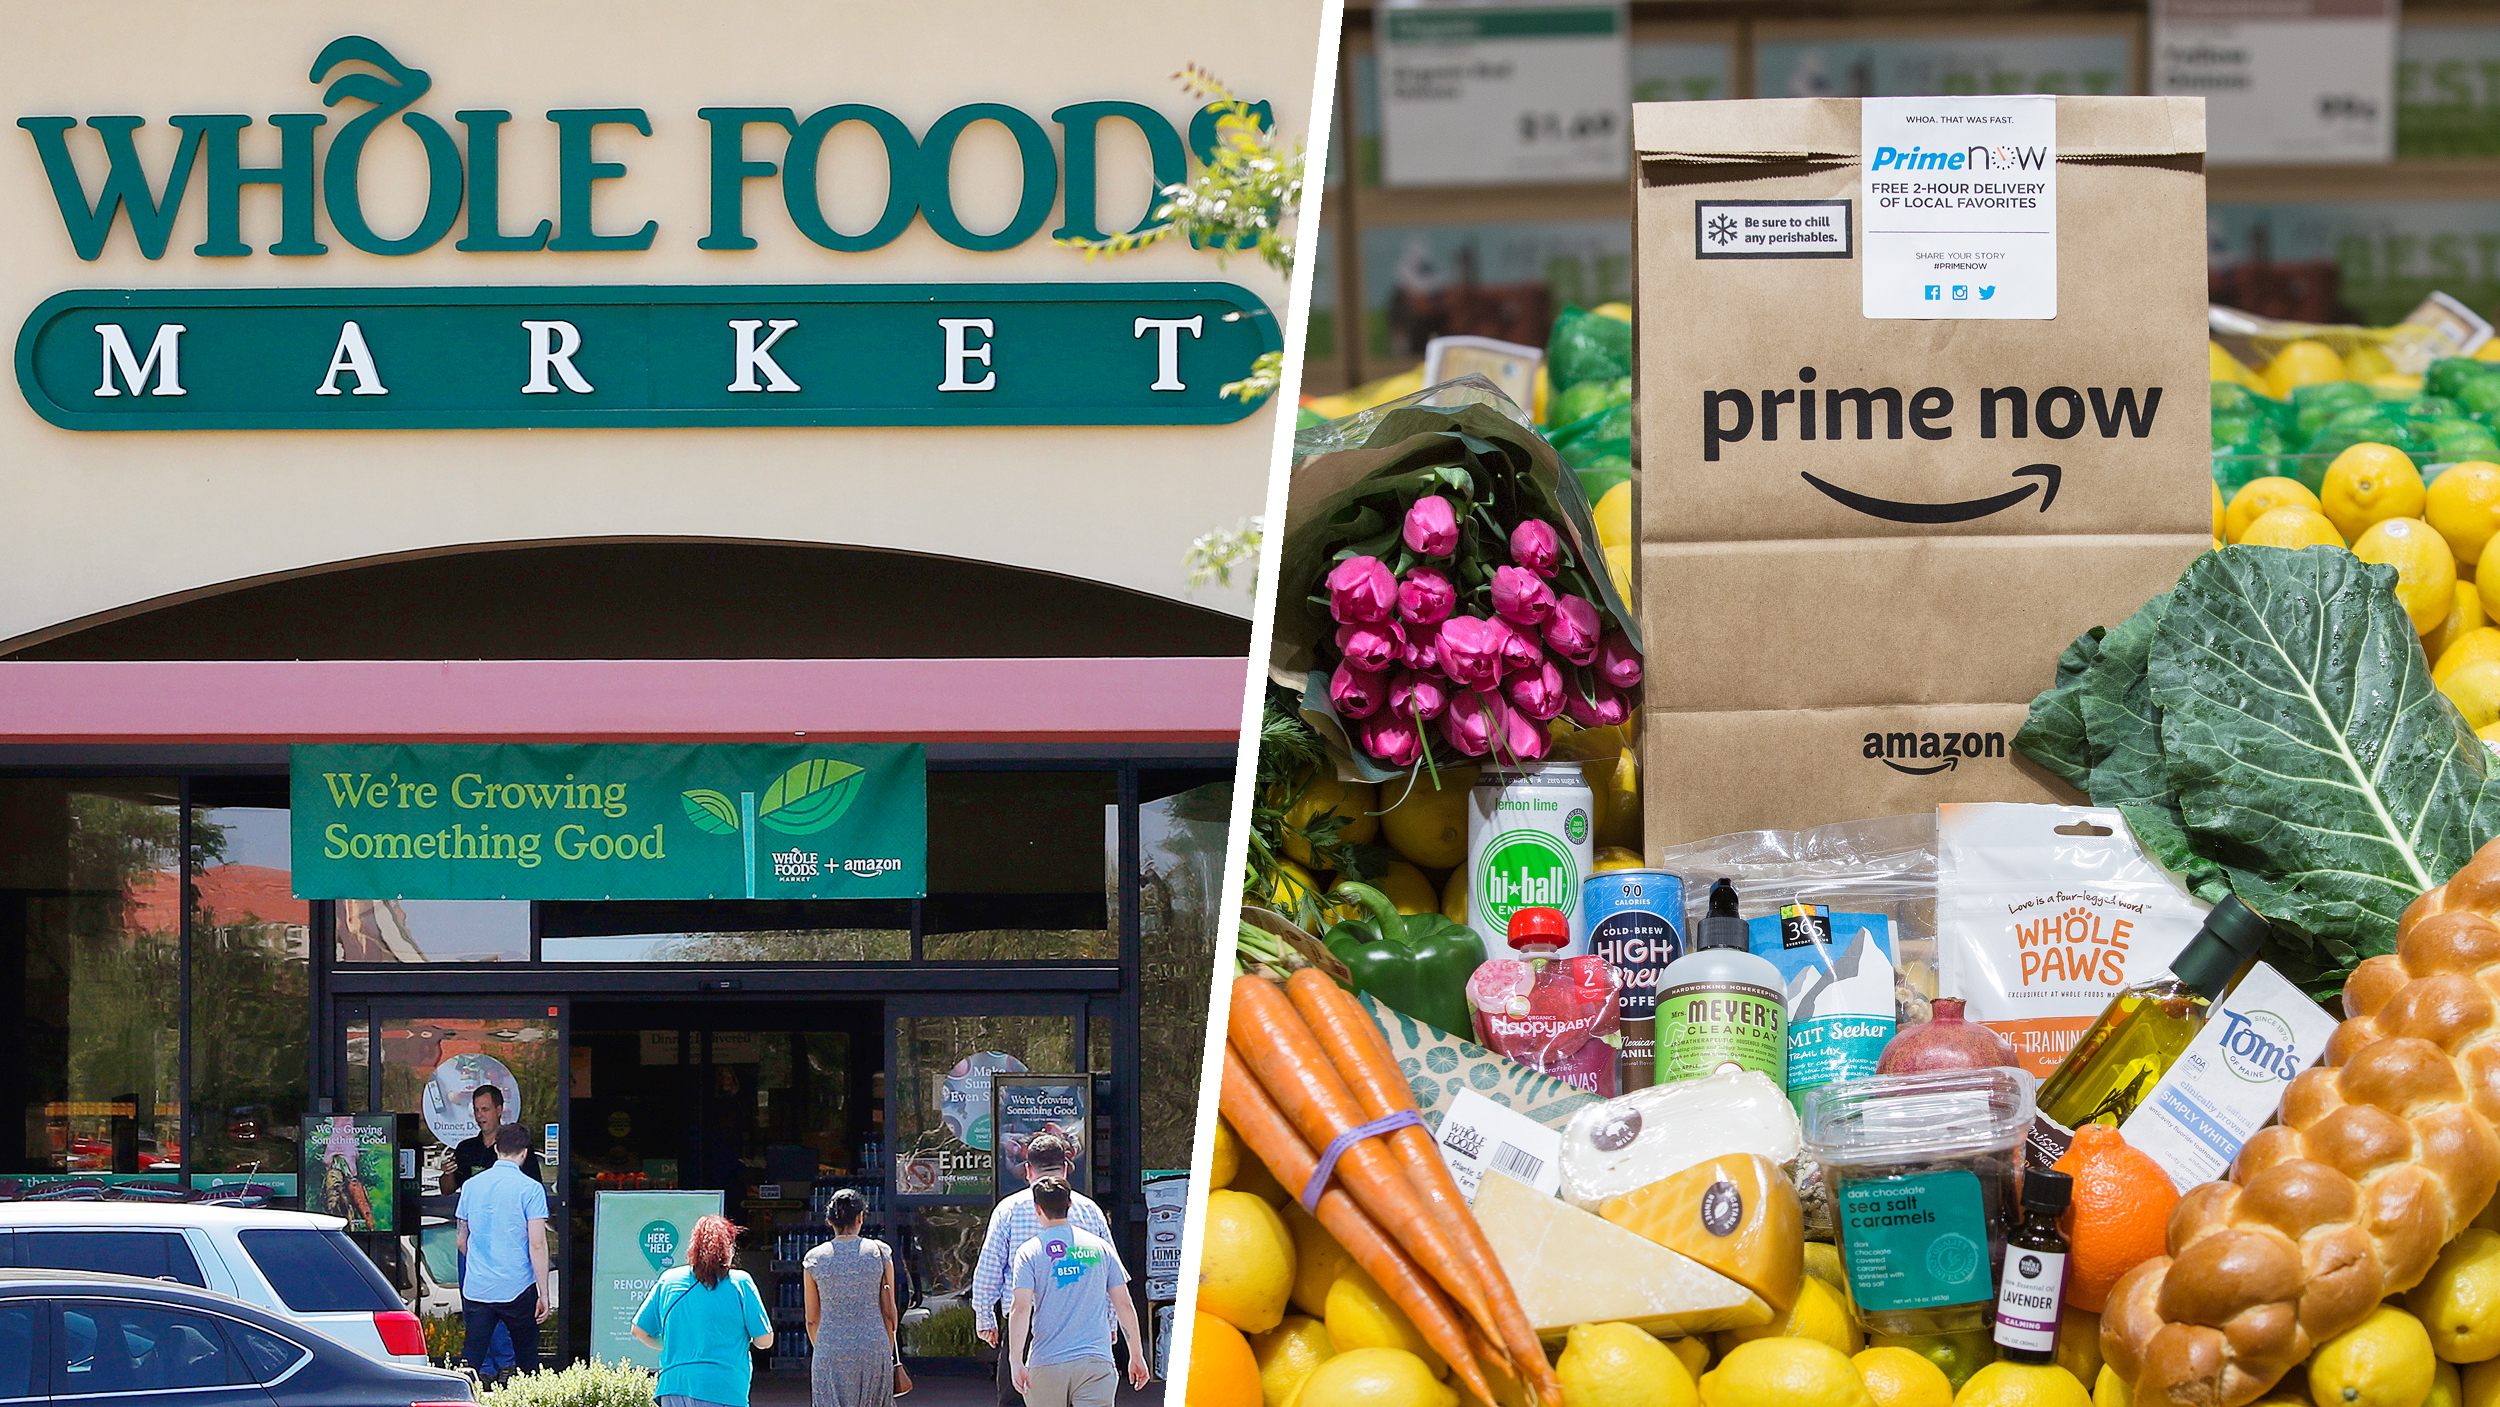 Skip the line at Whole Foods! Amazon launches 30-minute